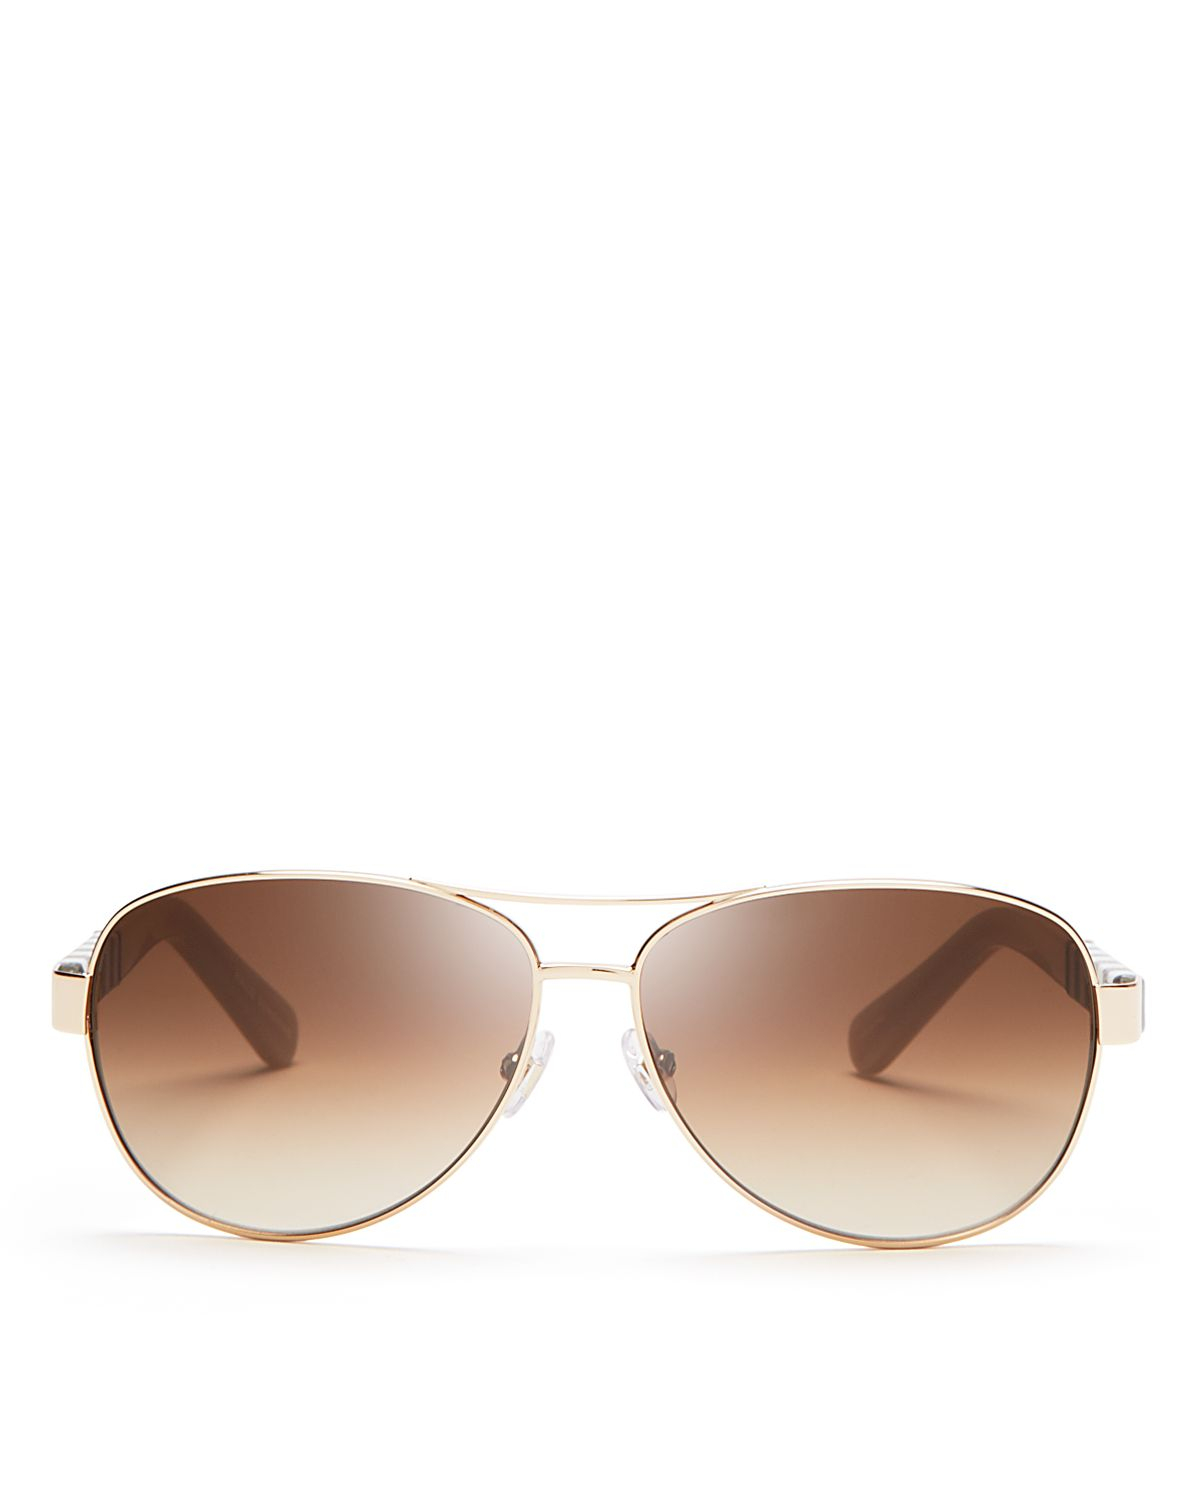 Kate Spade Polarized Aviator Sunglasses  kate spade new york dalia aviator sunglasses 58mm in metallic lyst